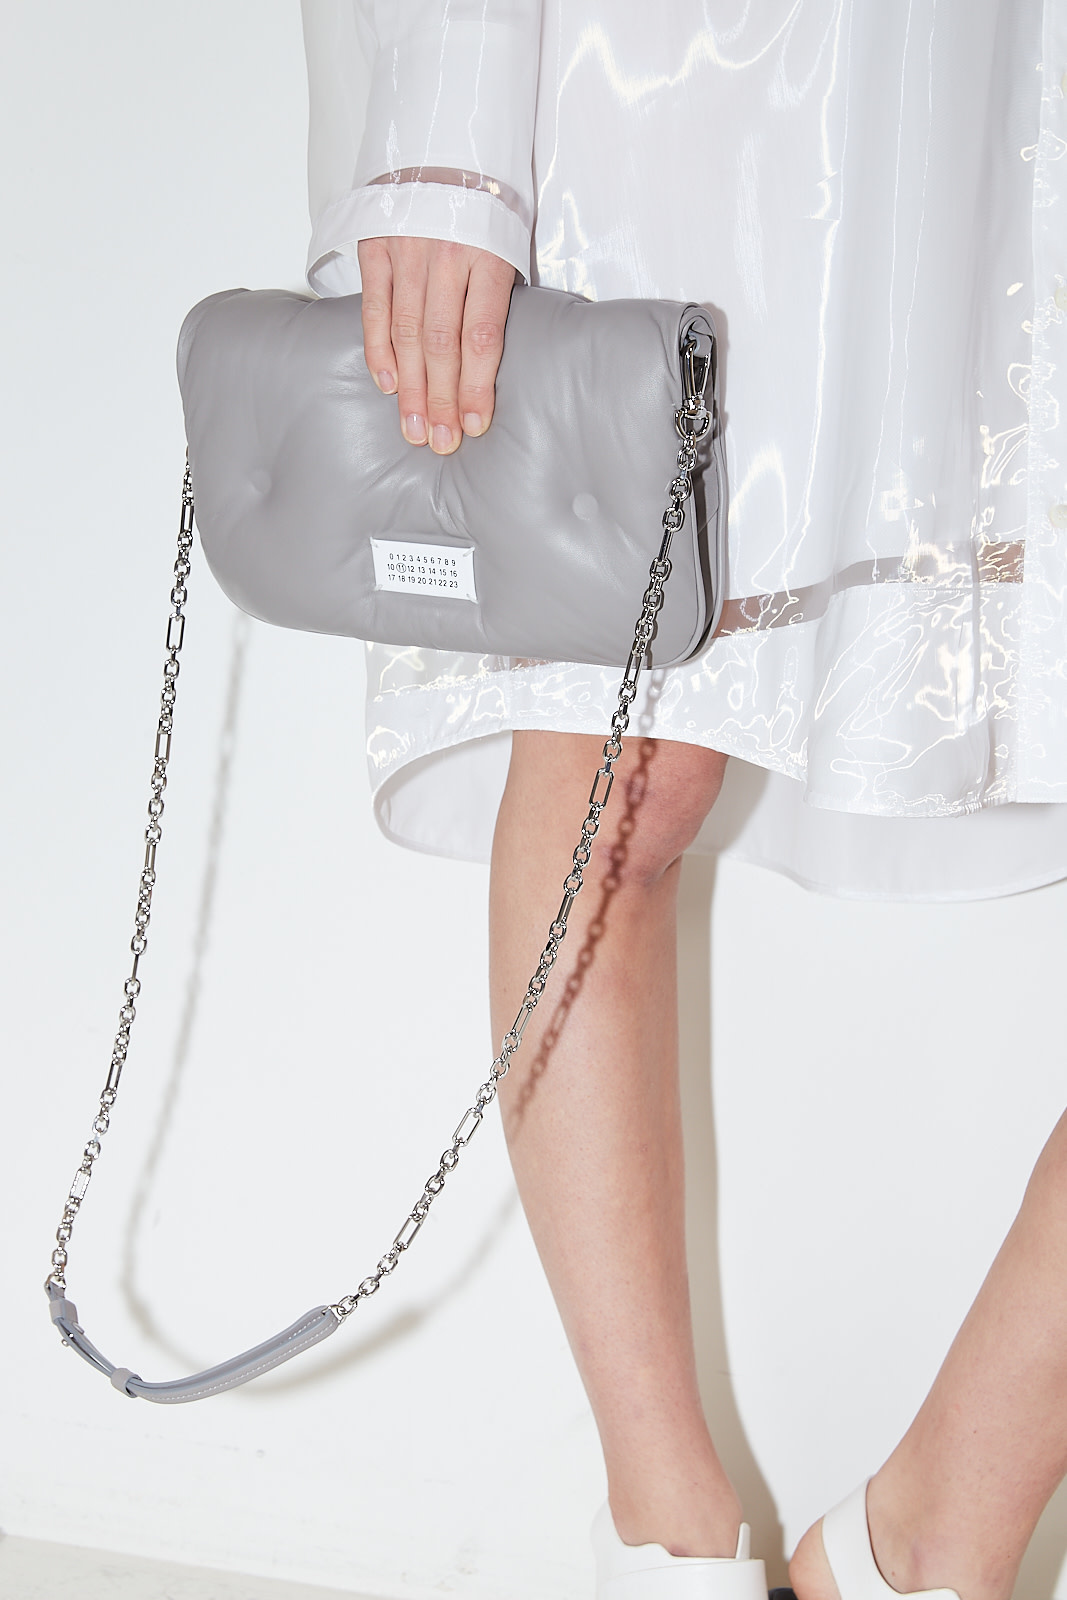 Maison Margiela Glam slam leather pochette